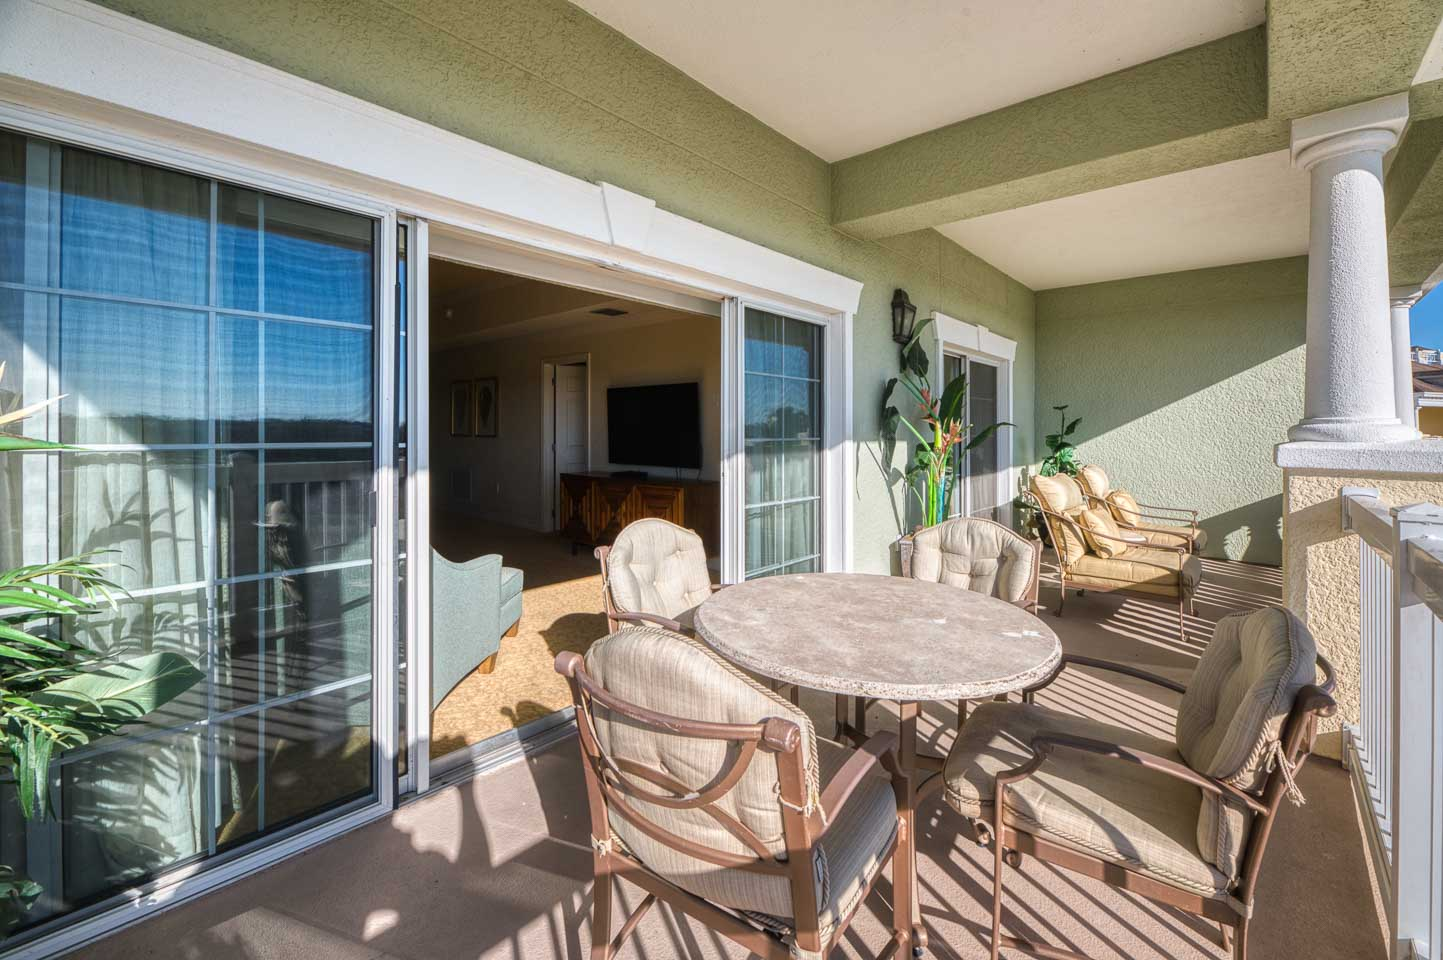 The Welcoming Golf Condo-195361